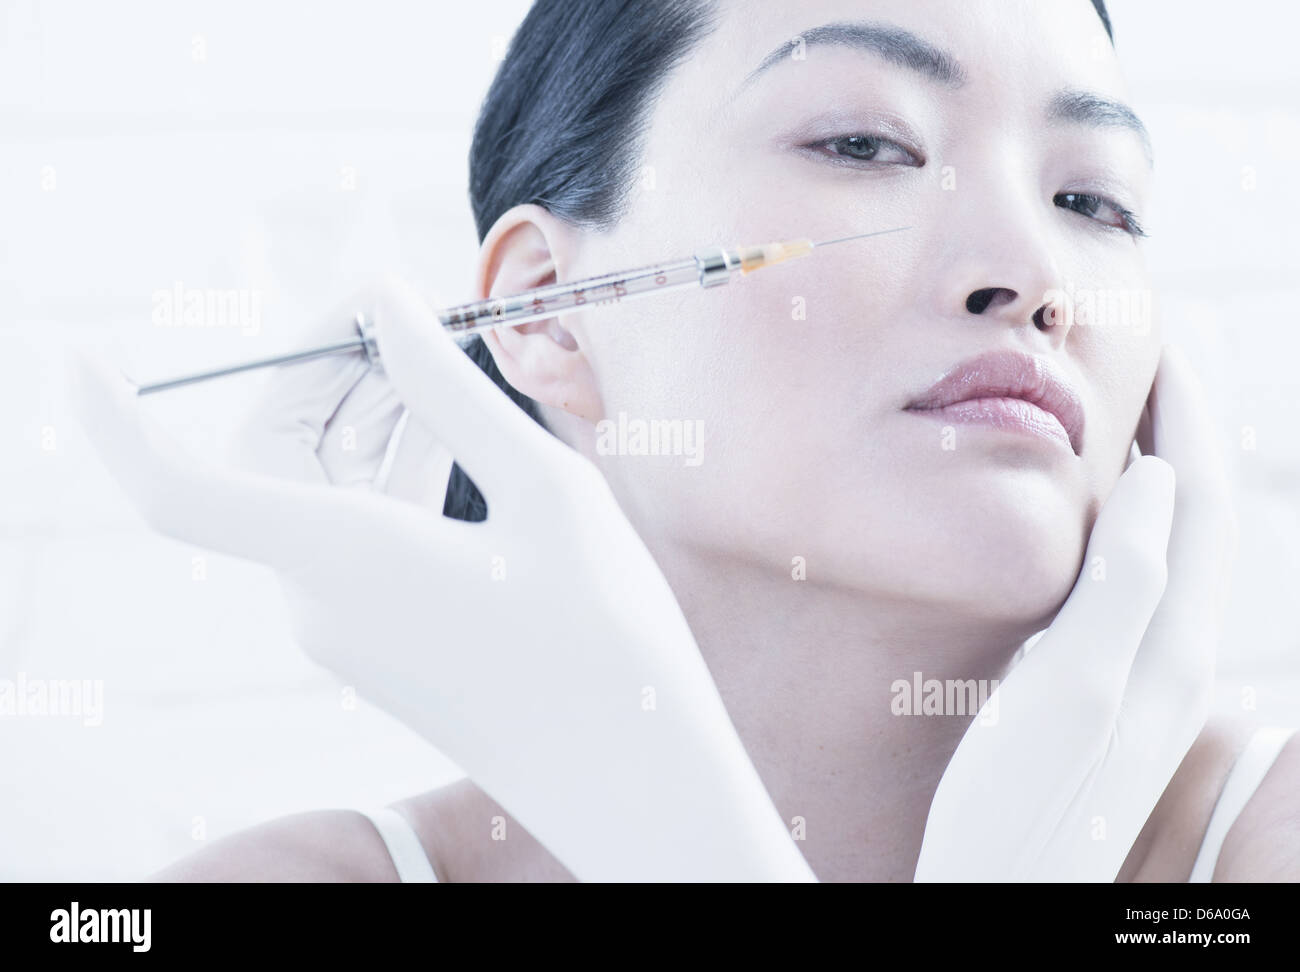 Woman having Botox injection in face - Stock Image